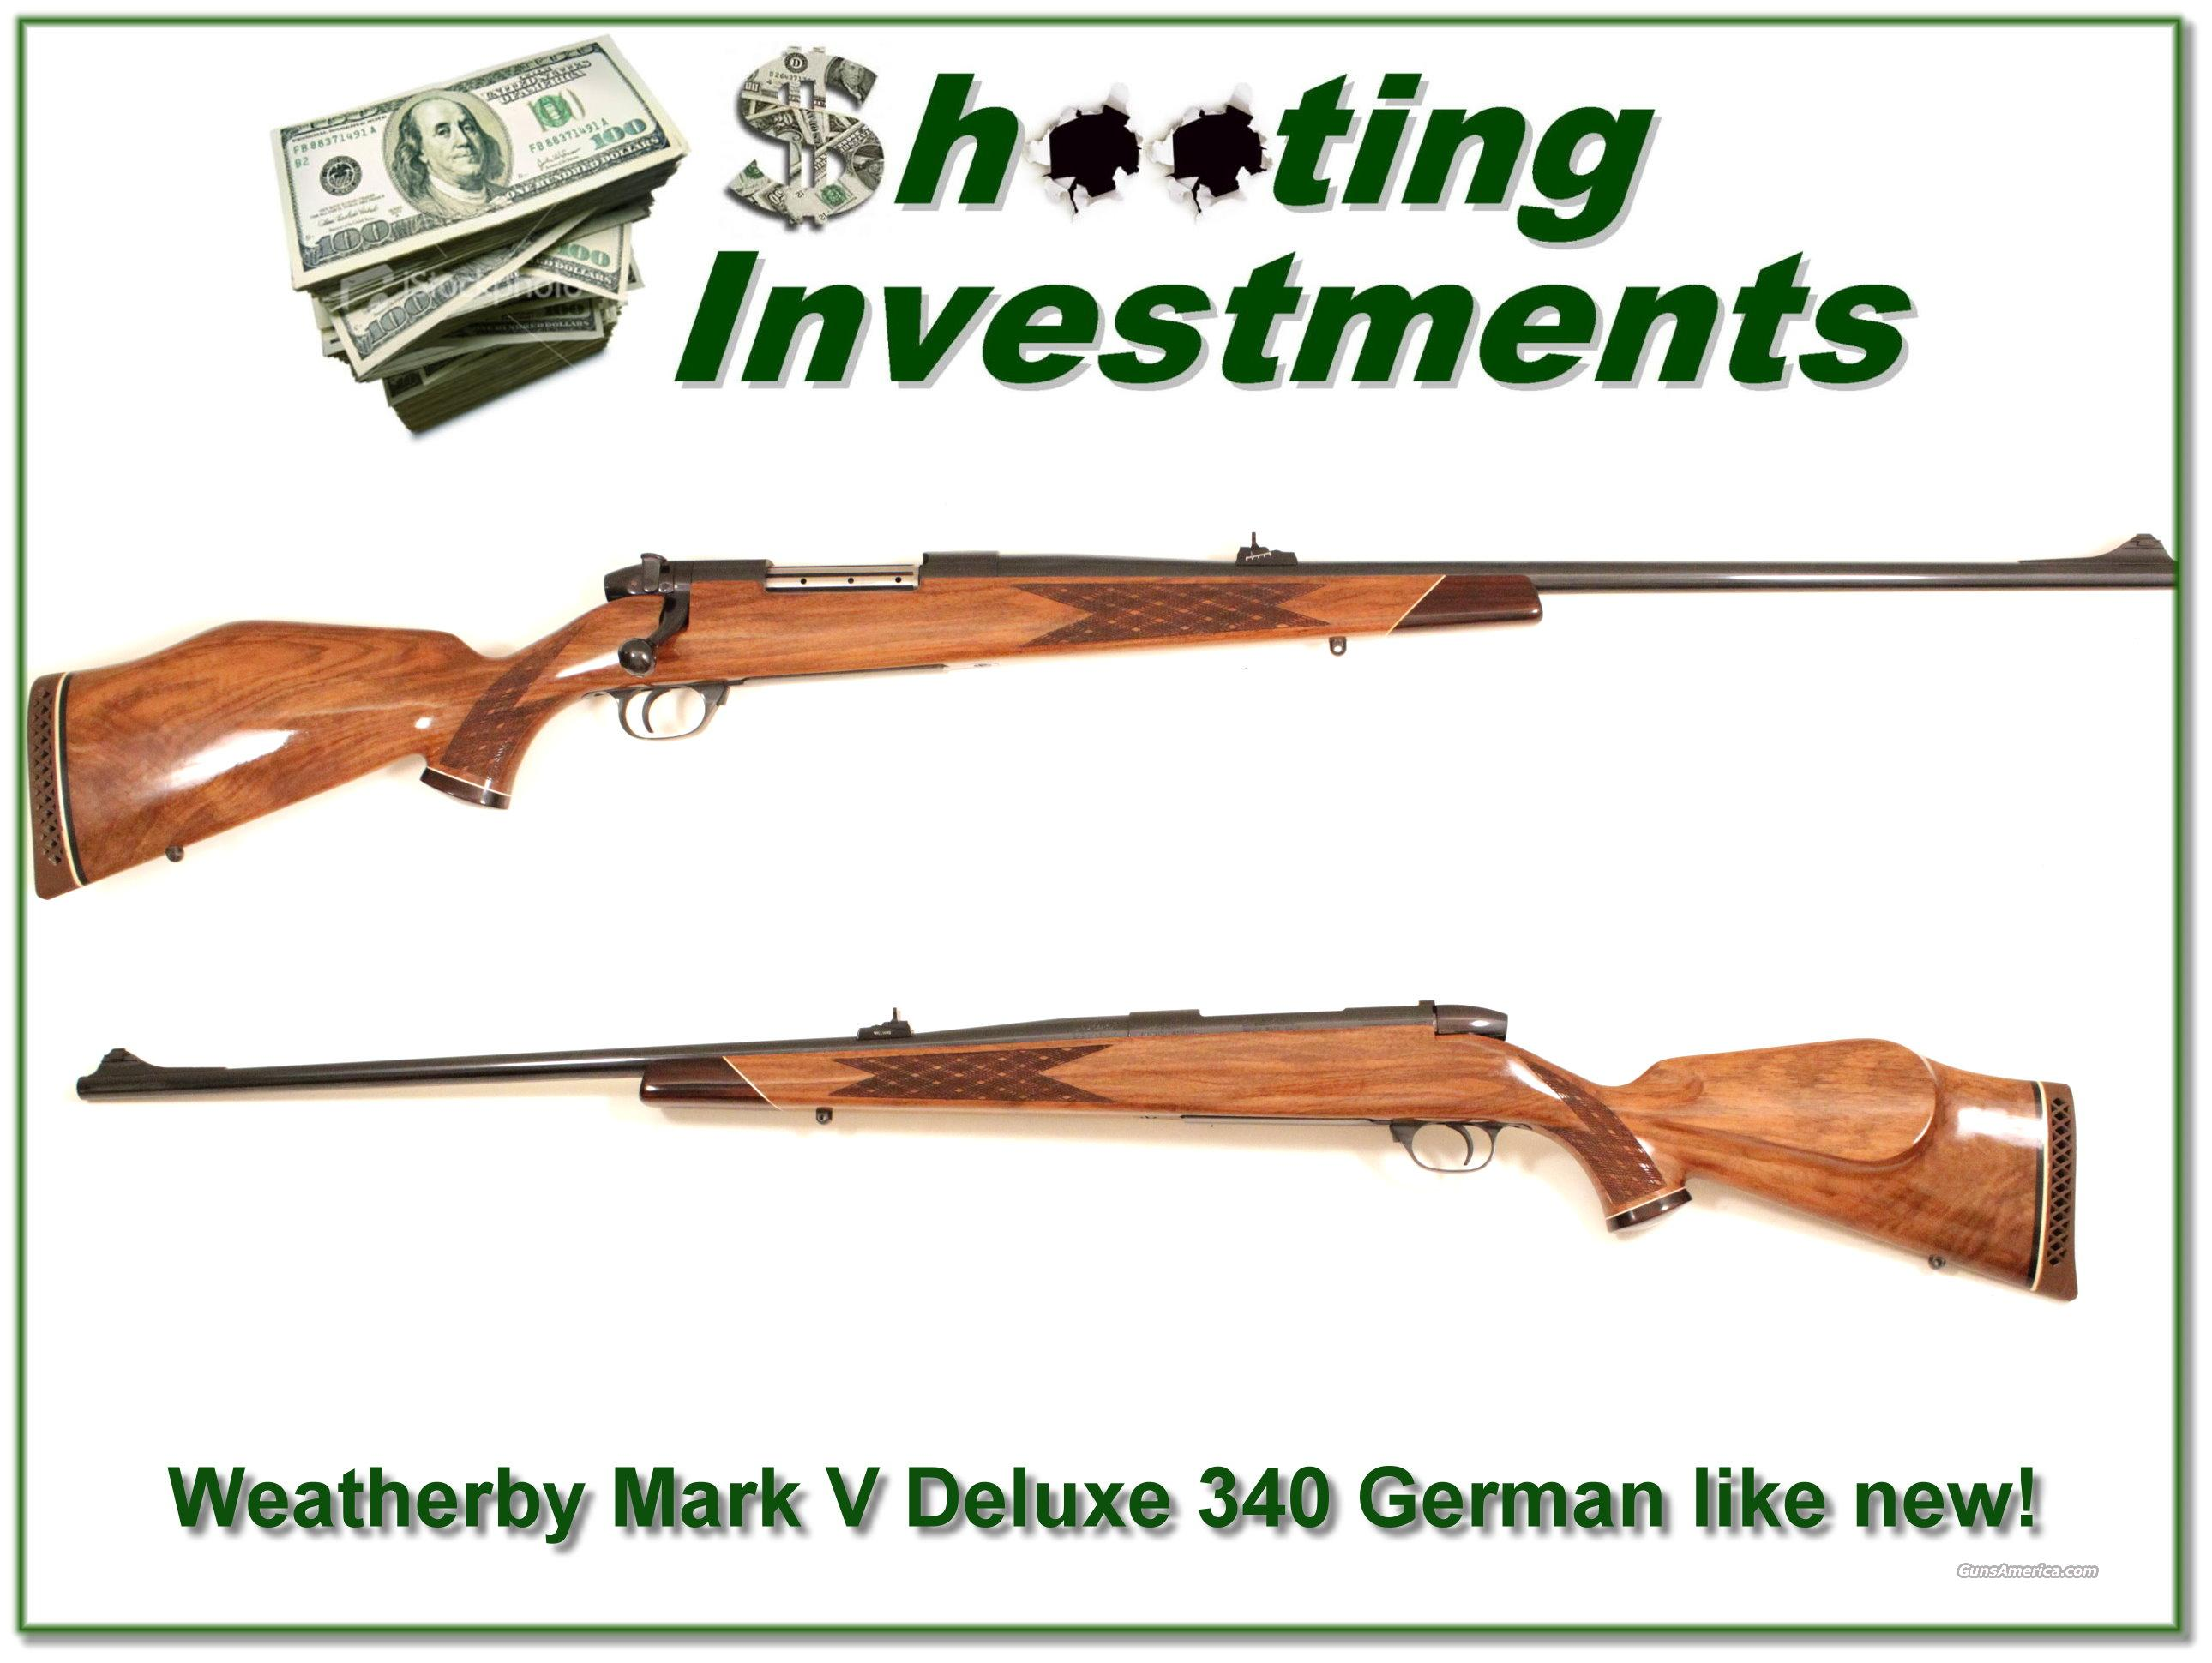 Weatherby Mark V Deluxe 340 German like new!  Guns > Rifles > Weatherby Rifles > Sporting